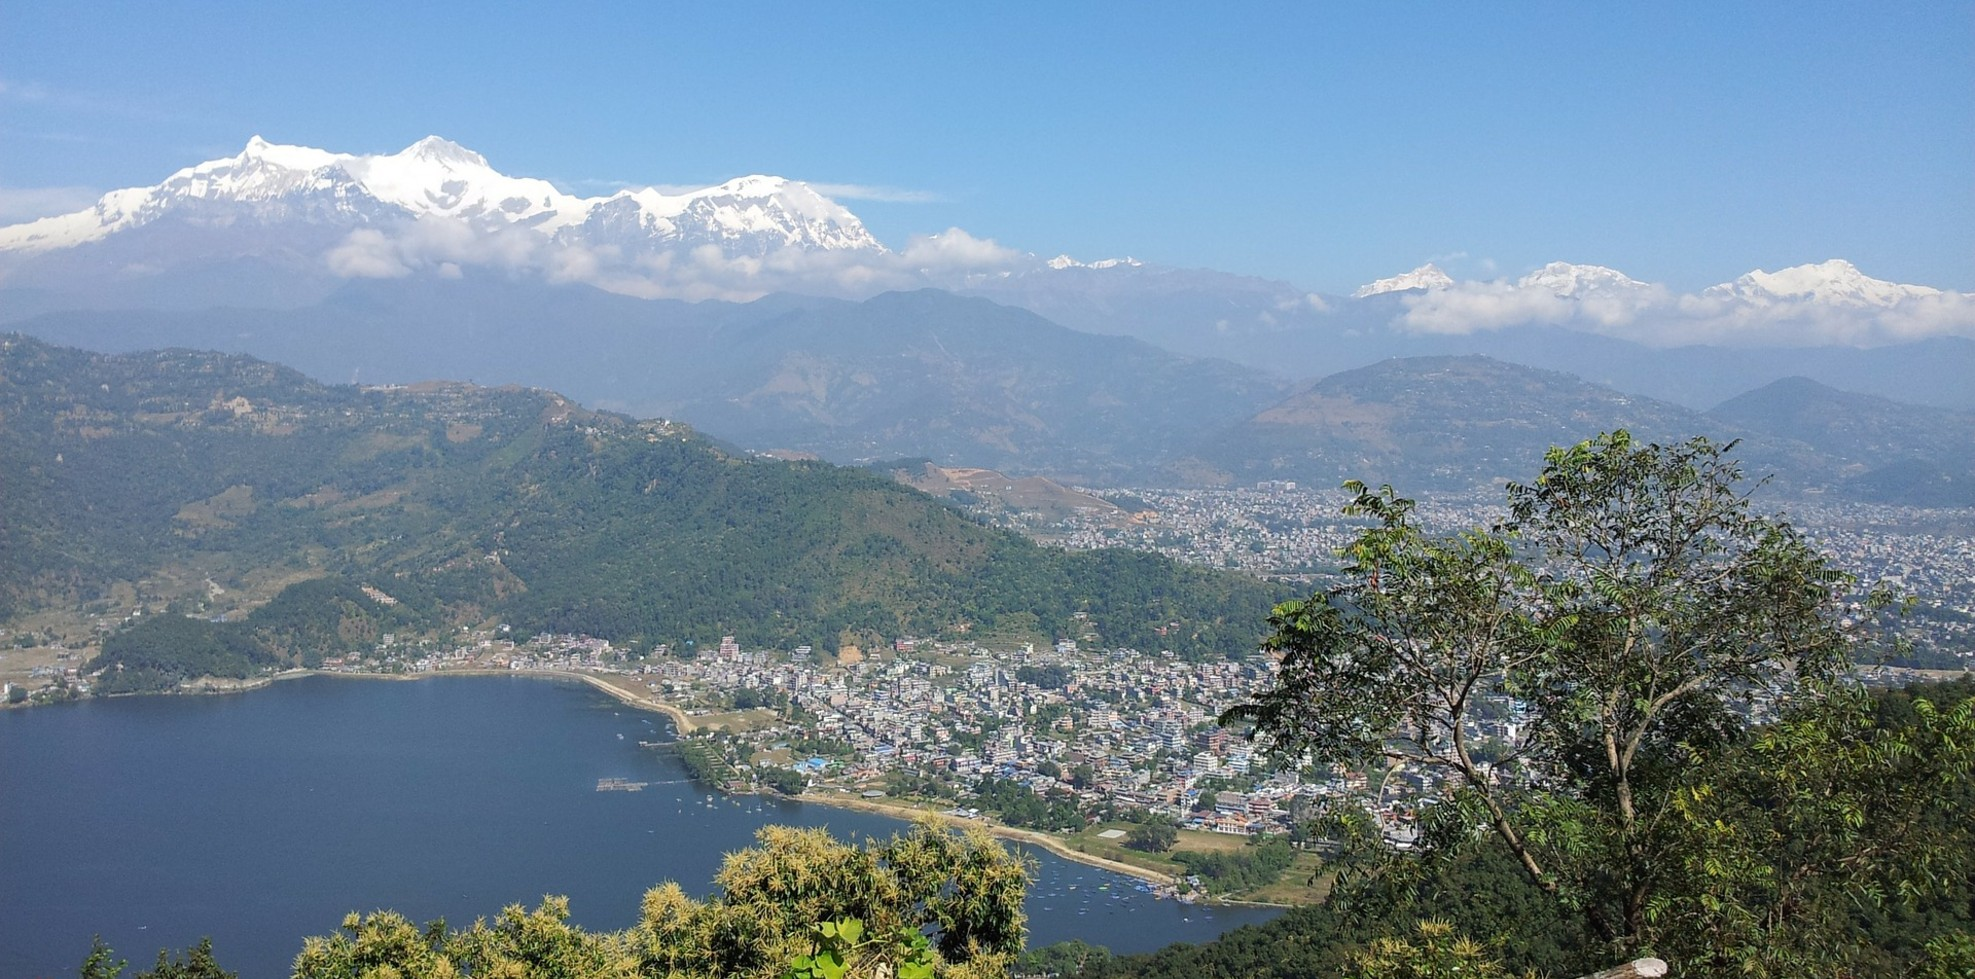 Panchase Trek (Pokhara View Trek)